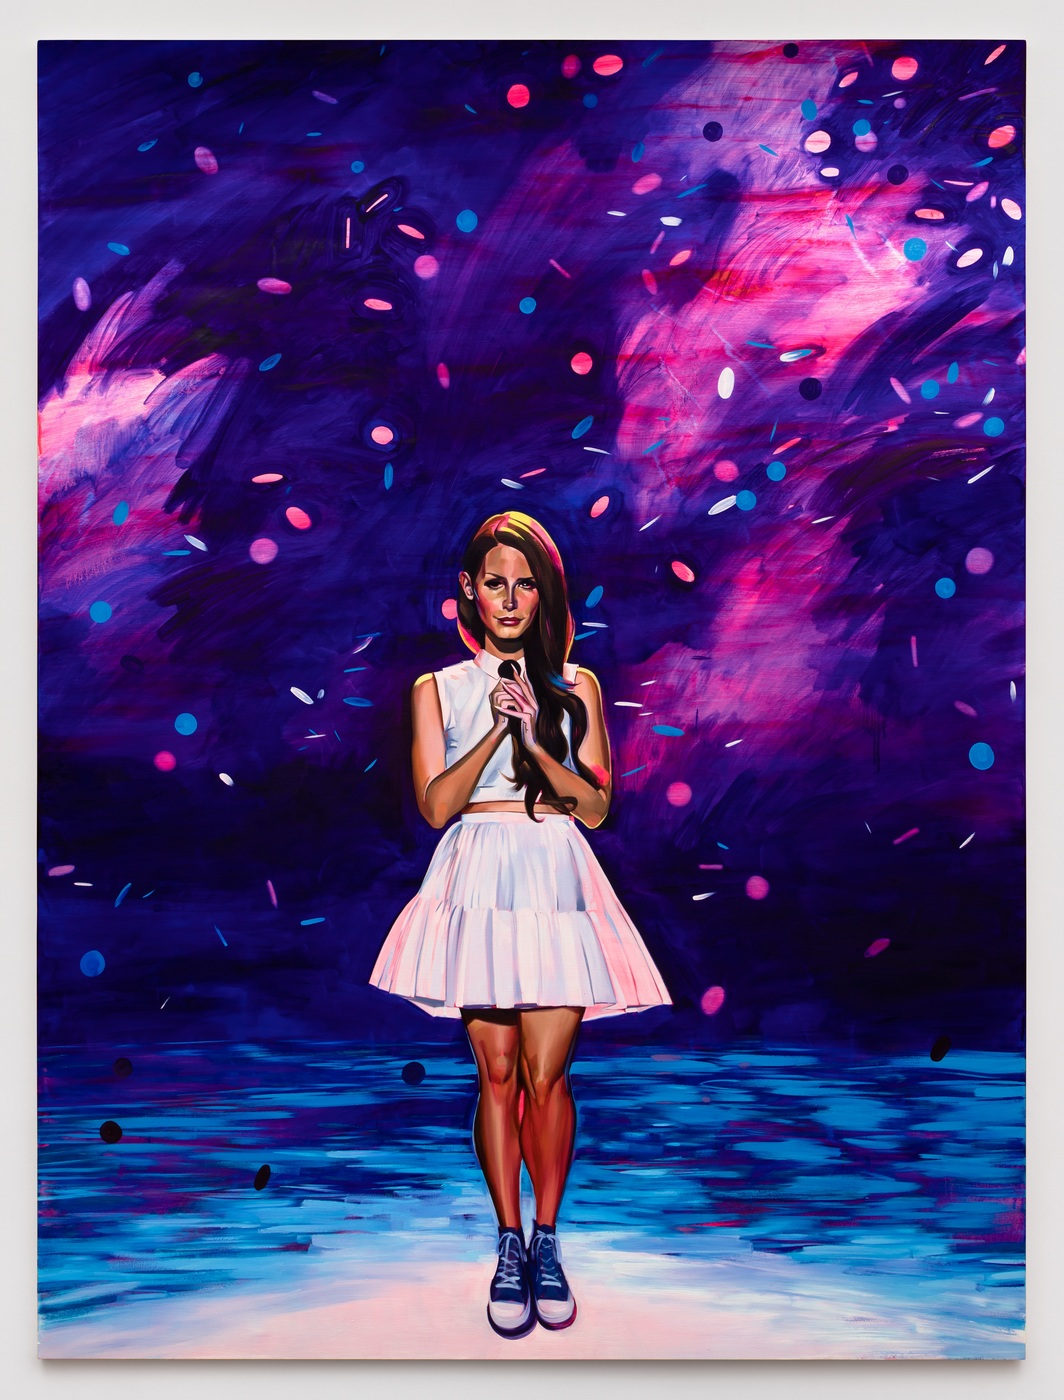 "Sam McKinniss, American Idol (Lana), 2018, oil and acrylic on canvas, 96 x 72"". Courtesy of the artist, JTT, and Almine Rech."